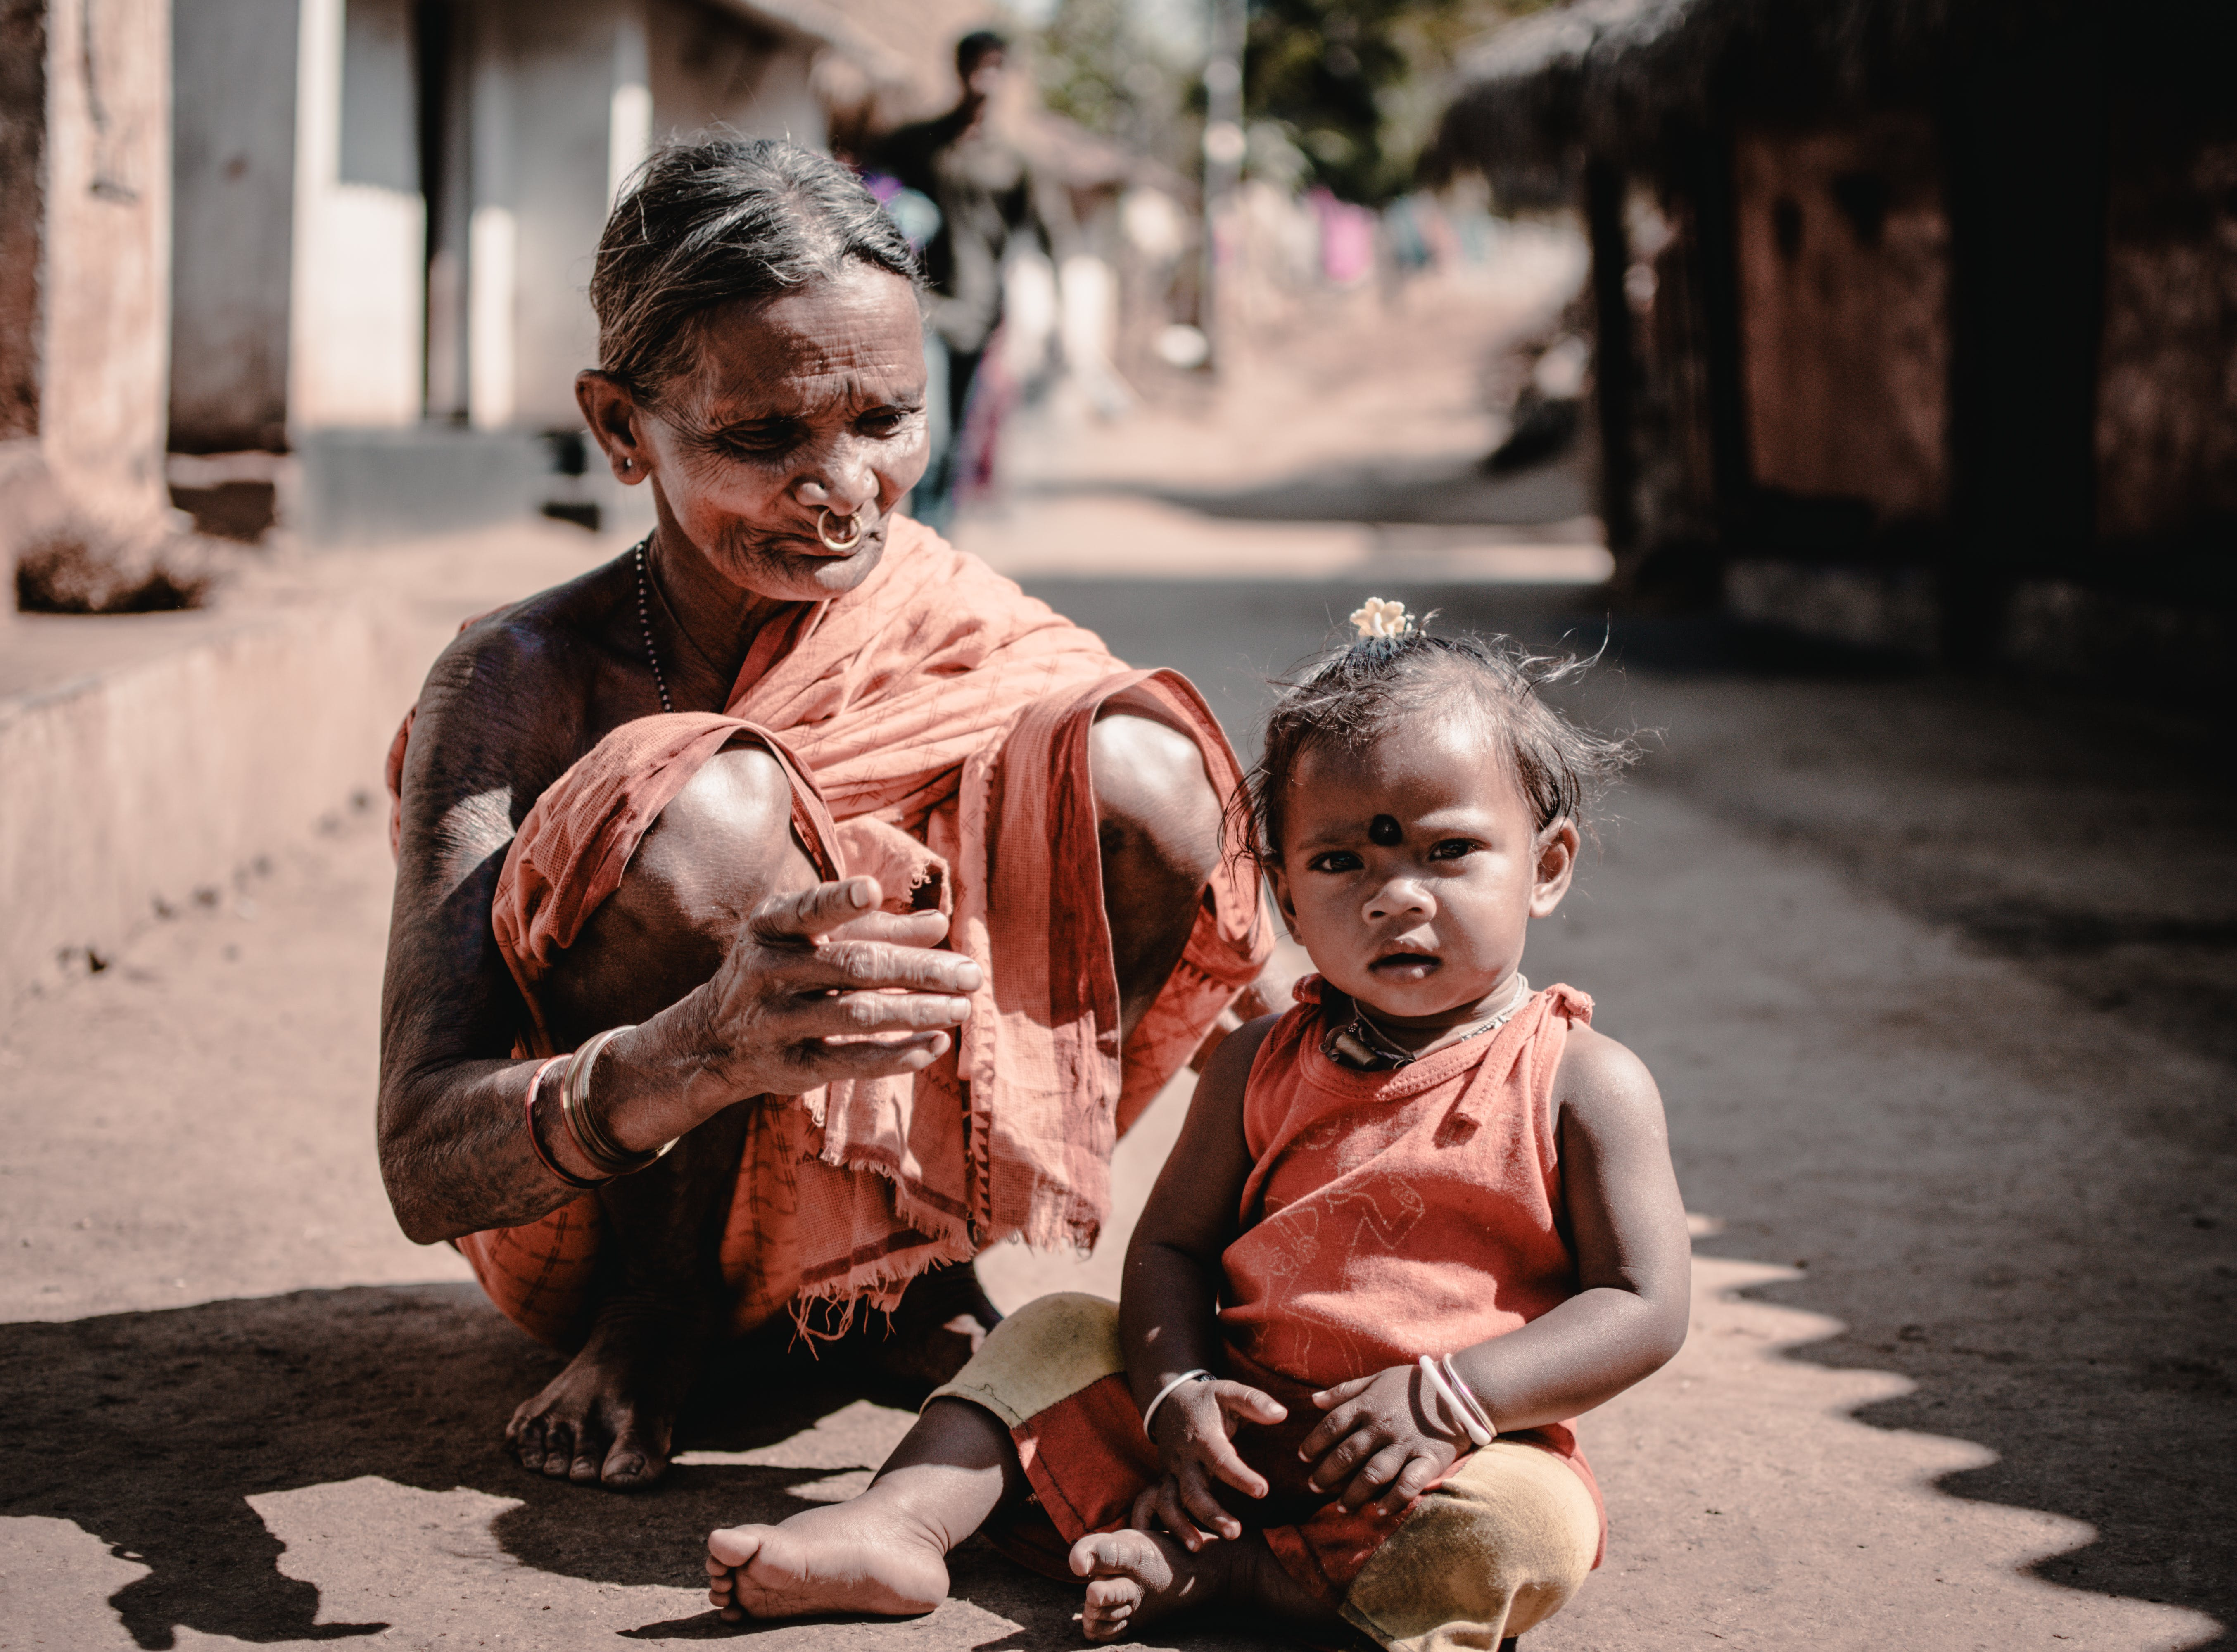 Woman and a Child Sitting on Concrete Road